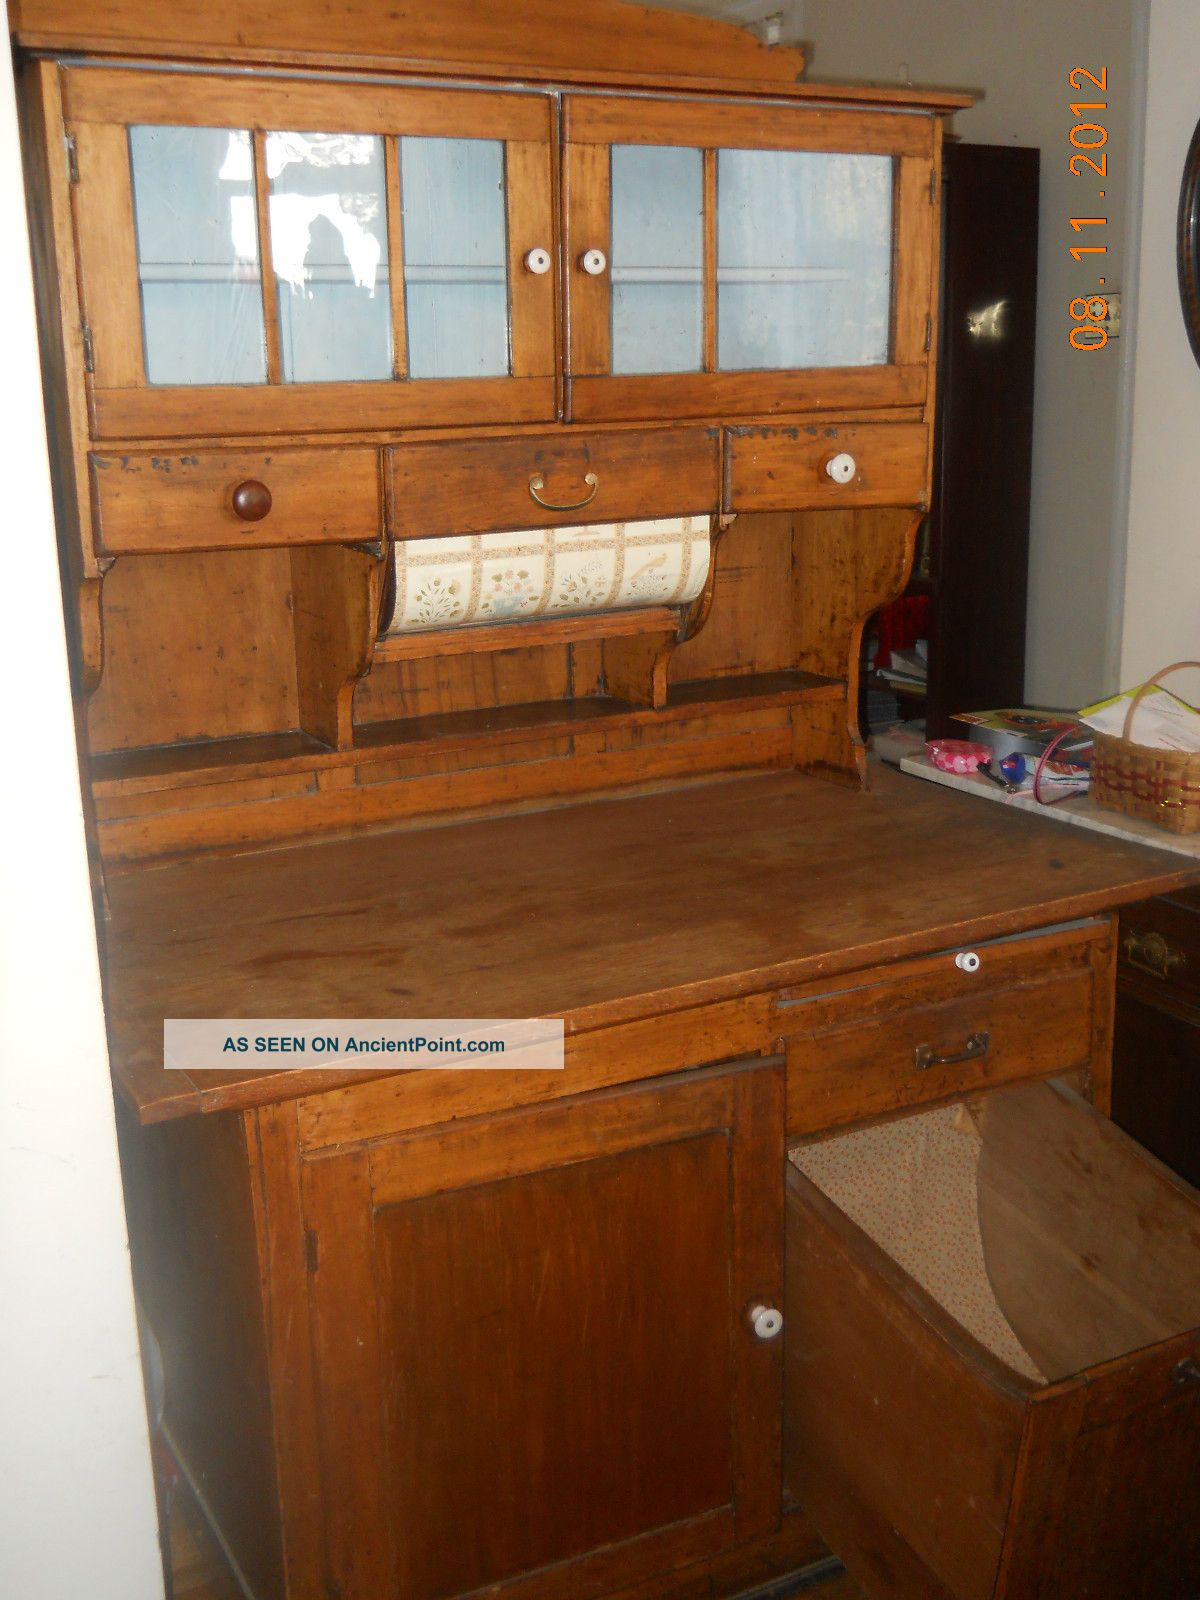 Hoosier cabinet reproduction ask home design for Reproduction kitchen cabinets